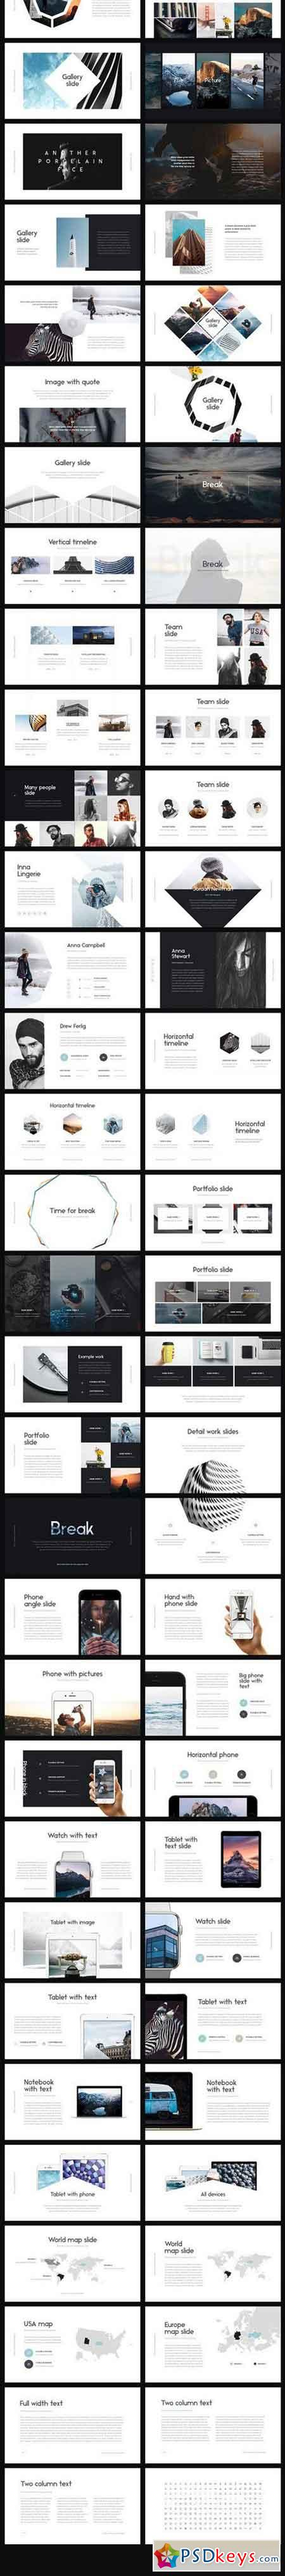 Oreol Keynote Template + GIFTS 1353511